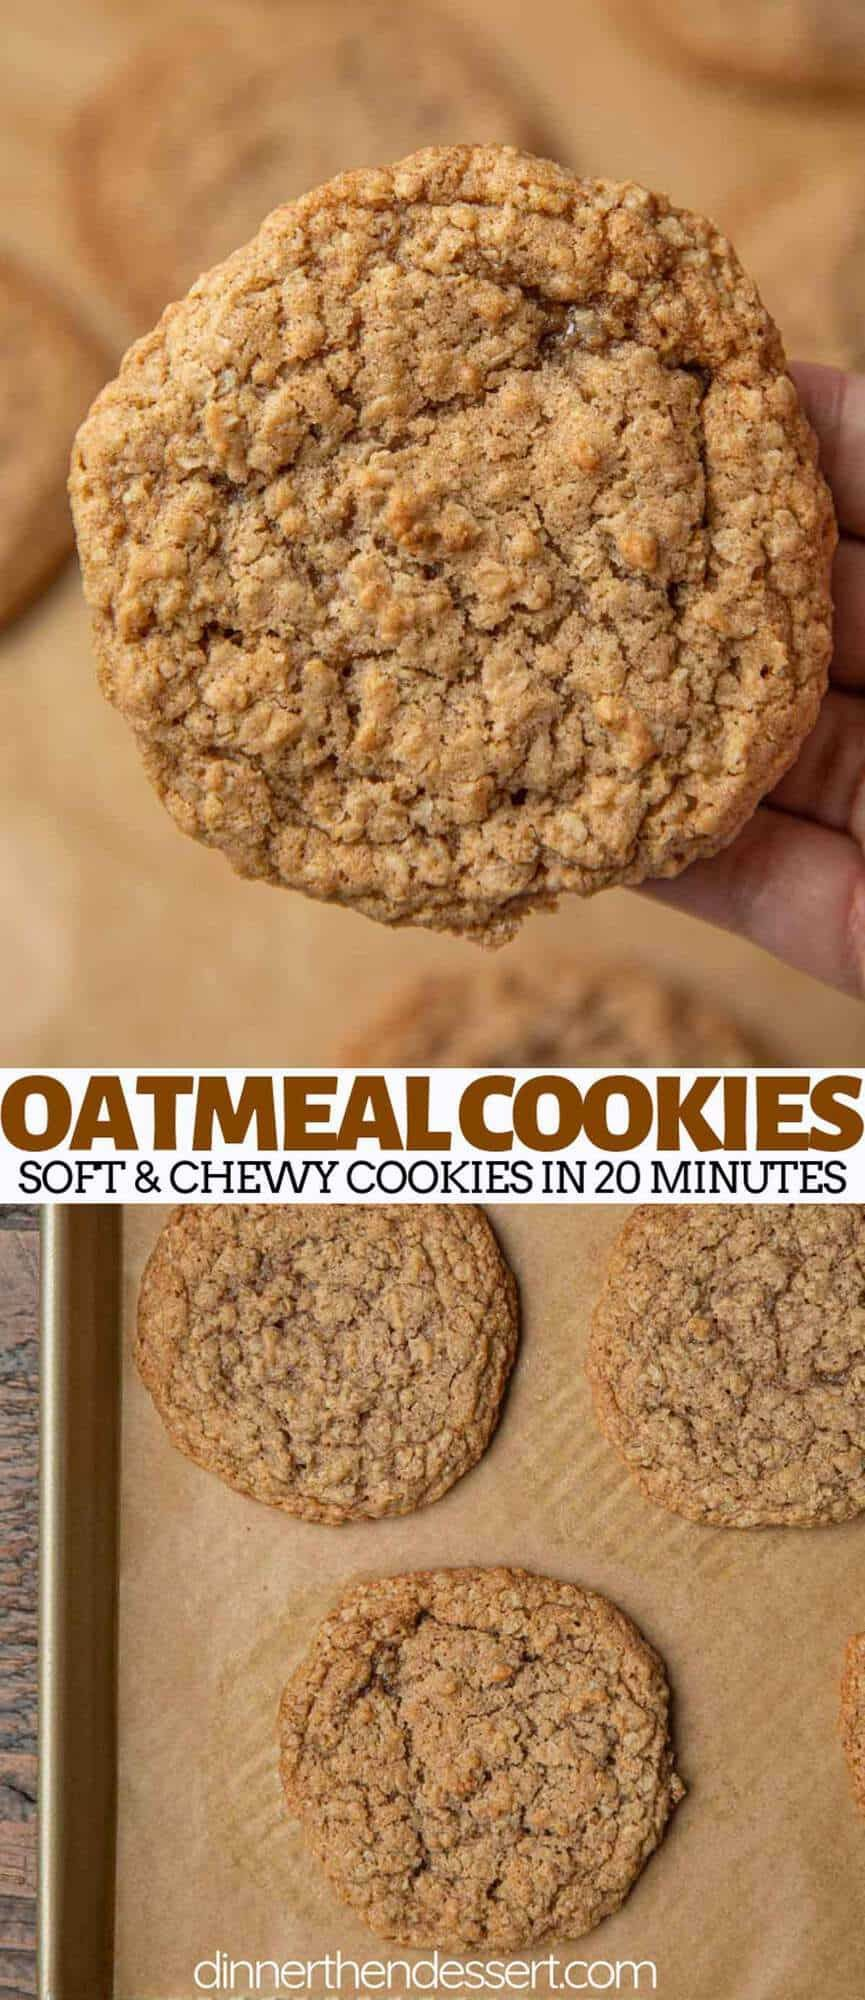 Oatmeal Cookies are the BEST soft and chewy cookie recipe, made with quick cooking oats, brown sugar, cinnamon, and vanilla extract, ready in under 20 minutes! #easy #chewy #oatmeal #best #oldfashioned #withquickoats #cinnamon #dinnerthendessert #quickcookies